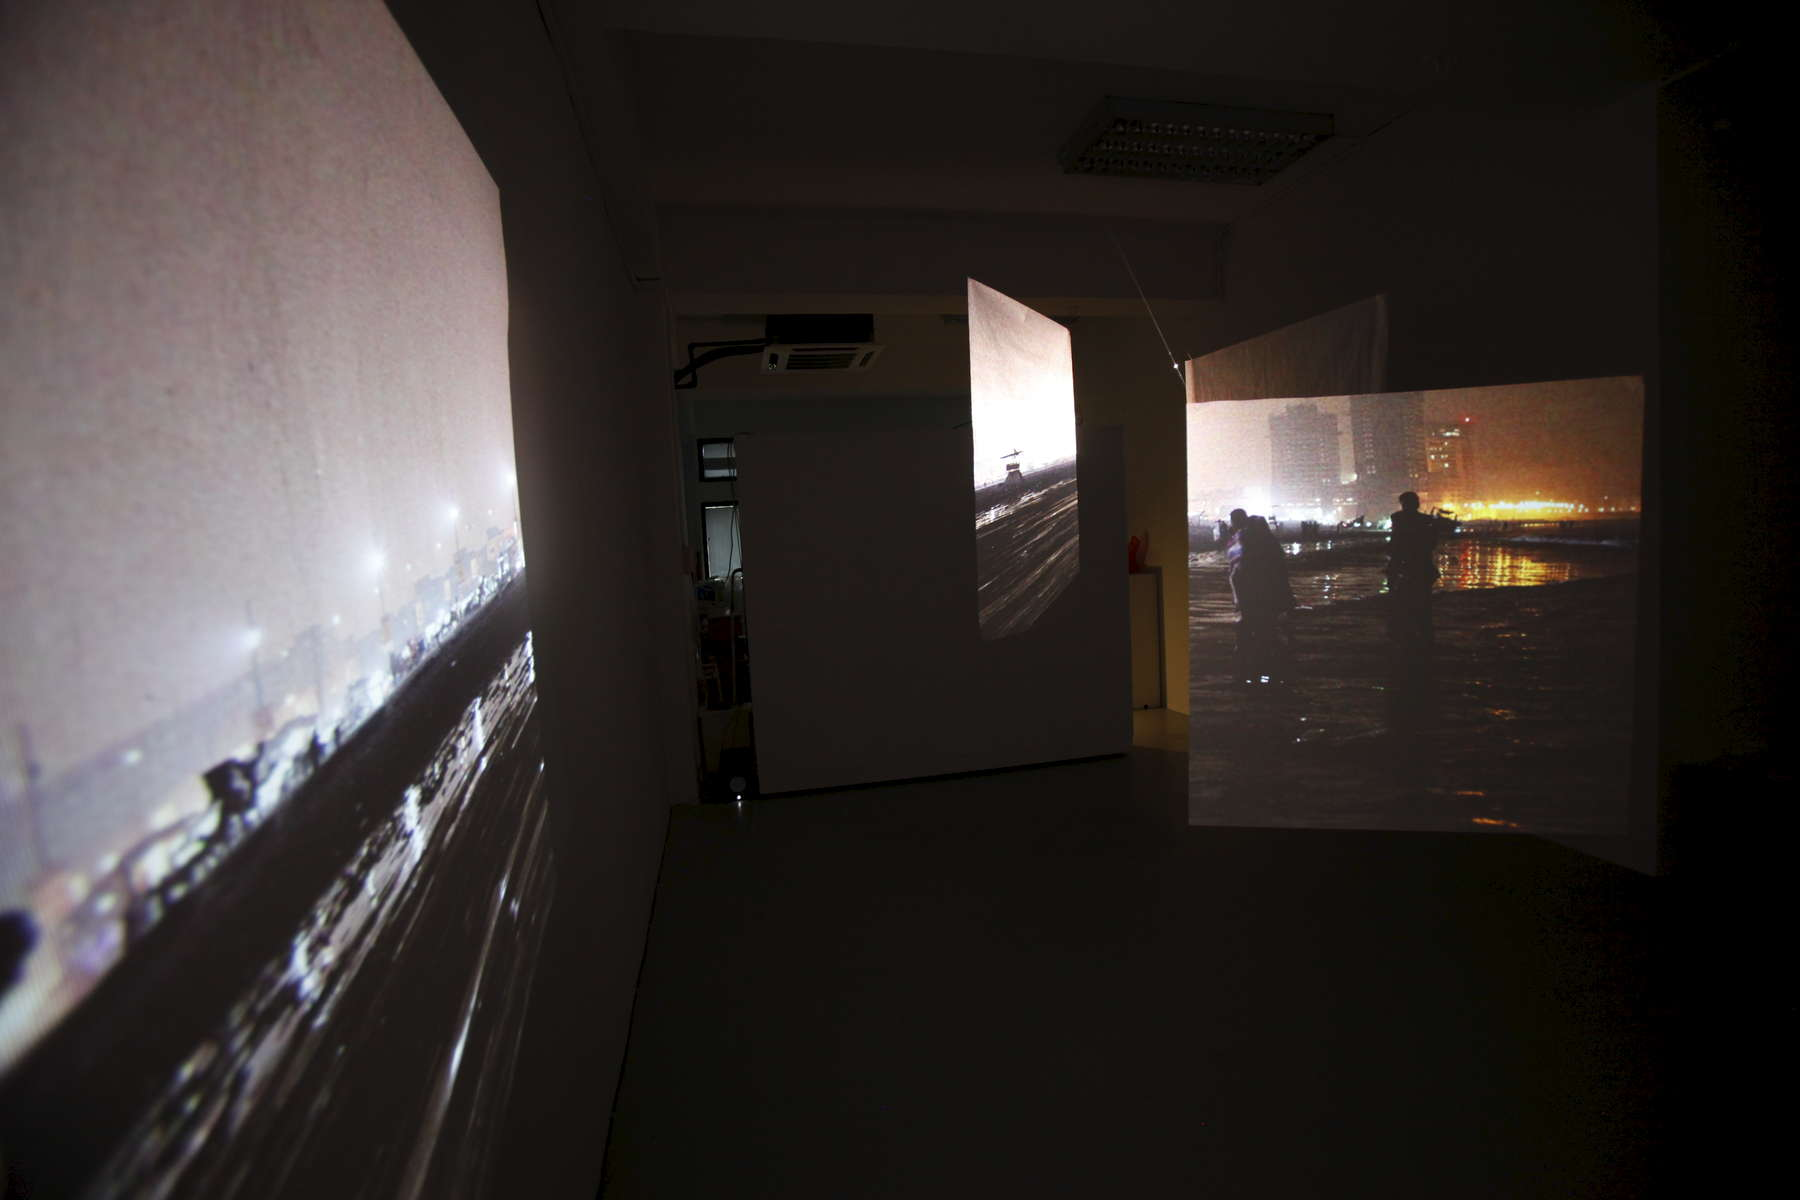 Installation view of work at Peninsular, Singapore